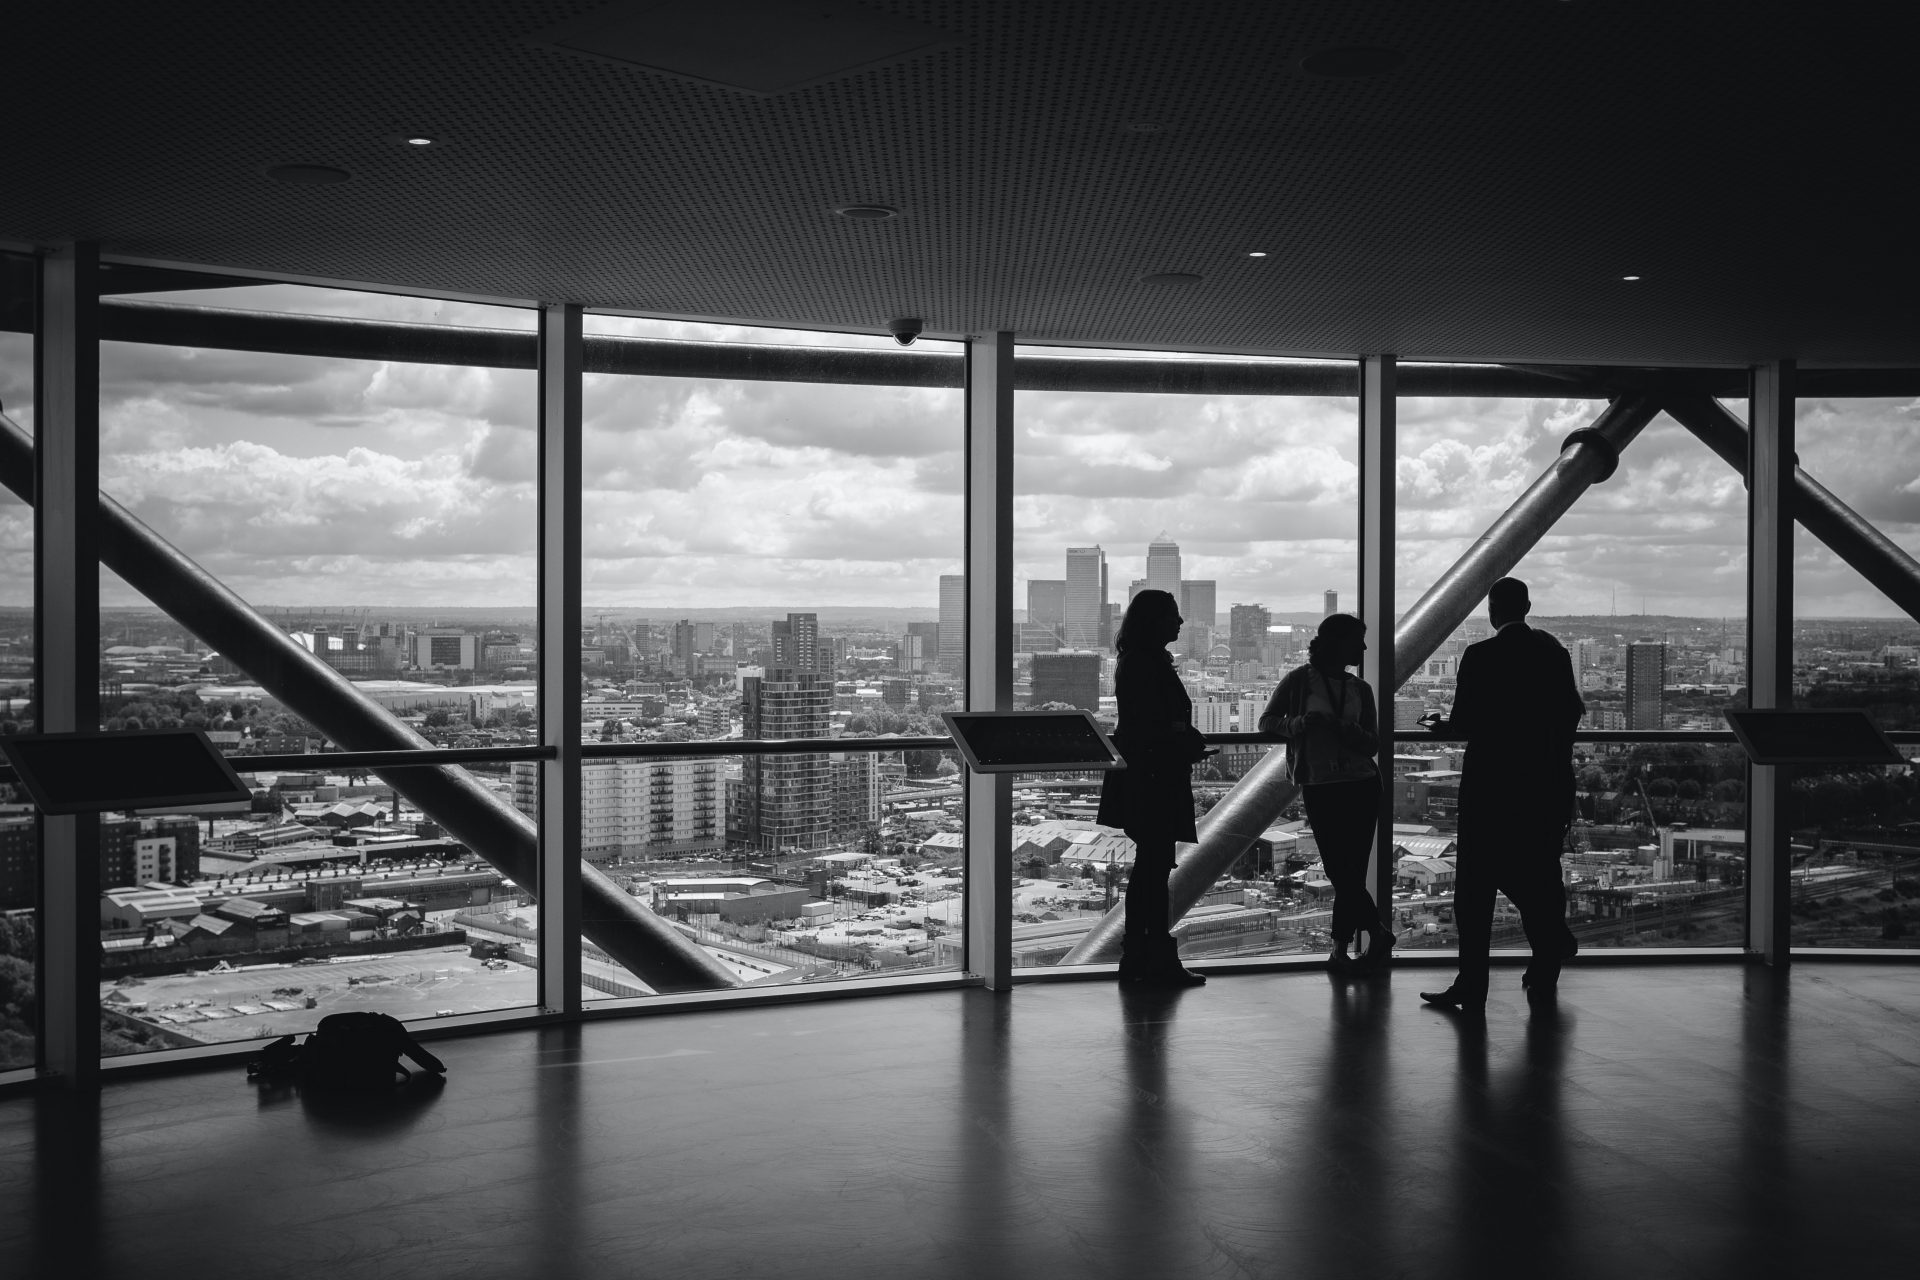 3 people looking at the city skyline out of floor to ceiling windows